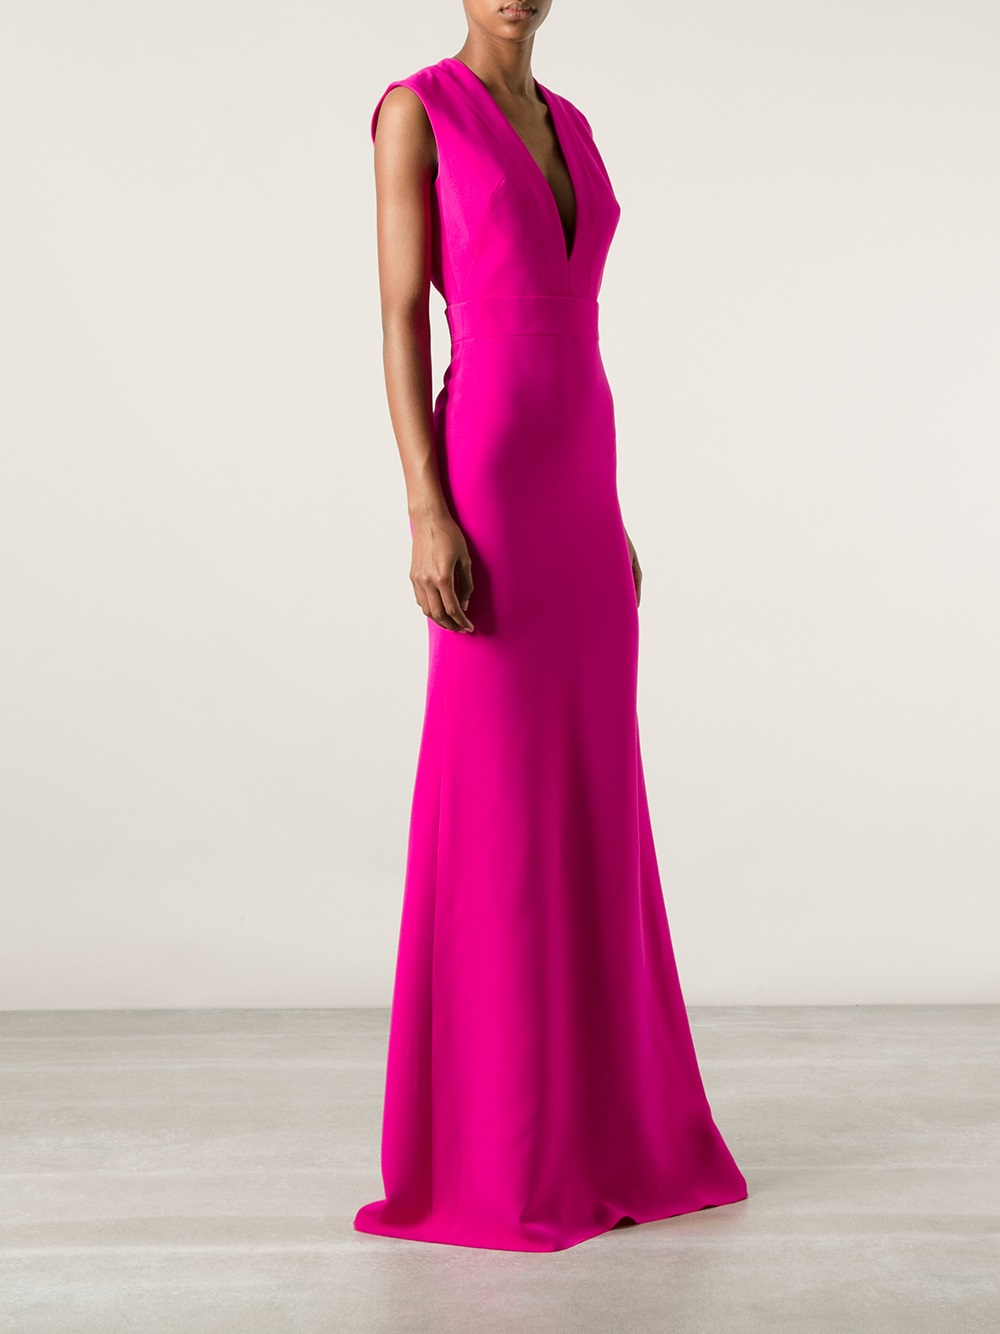 Lyst  Victoria beckham Evening Dress in Purple